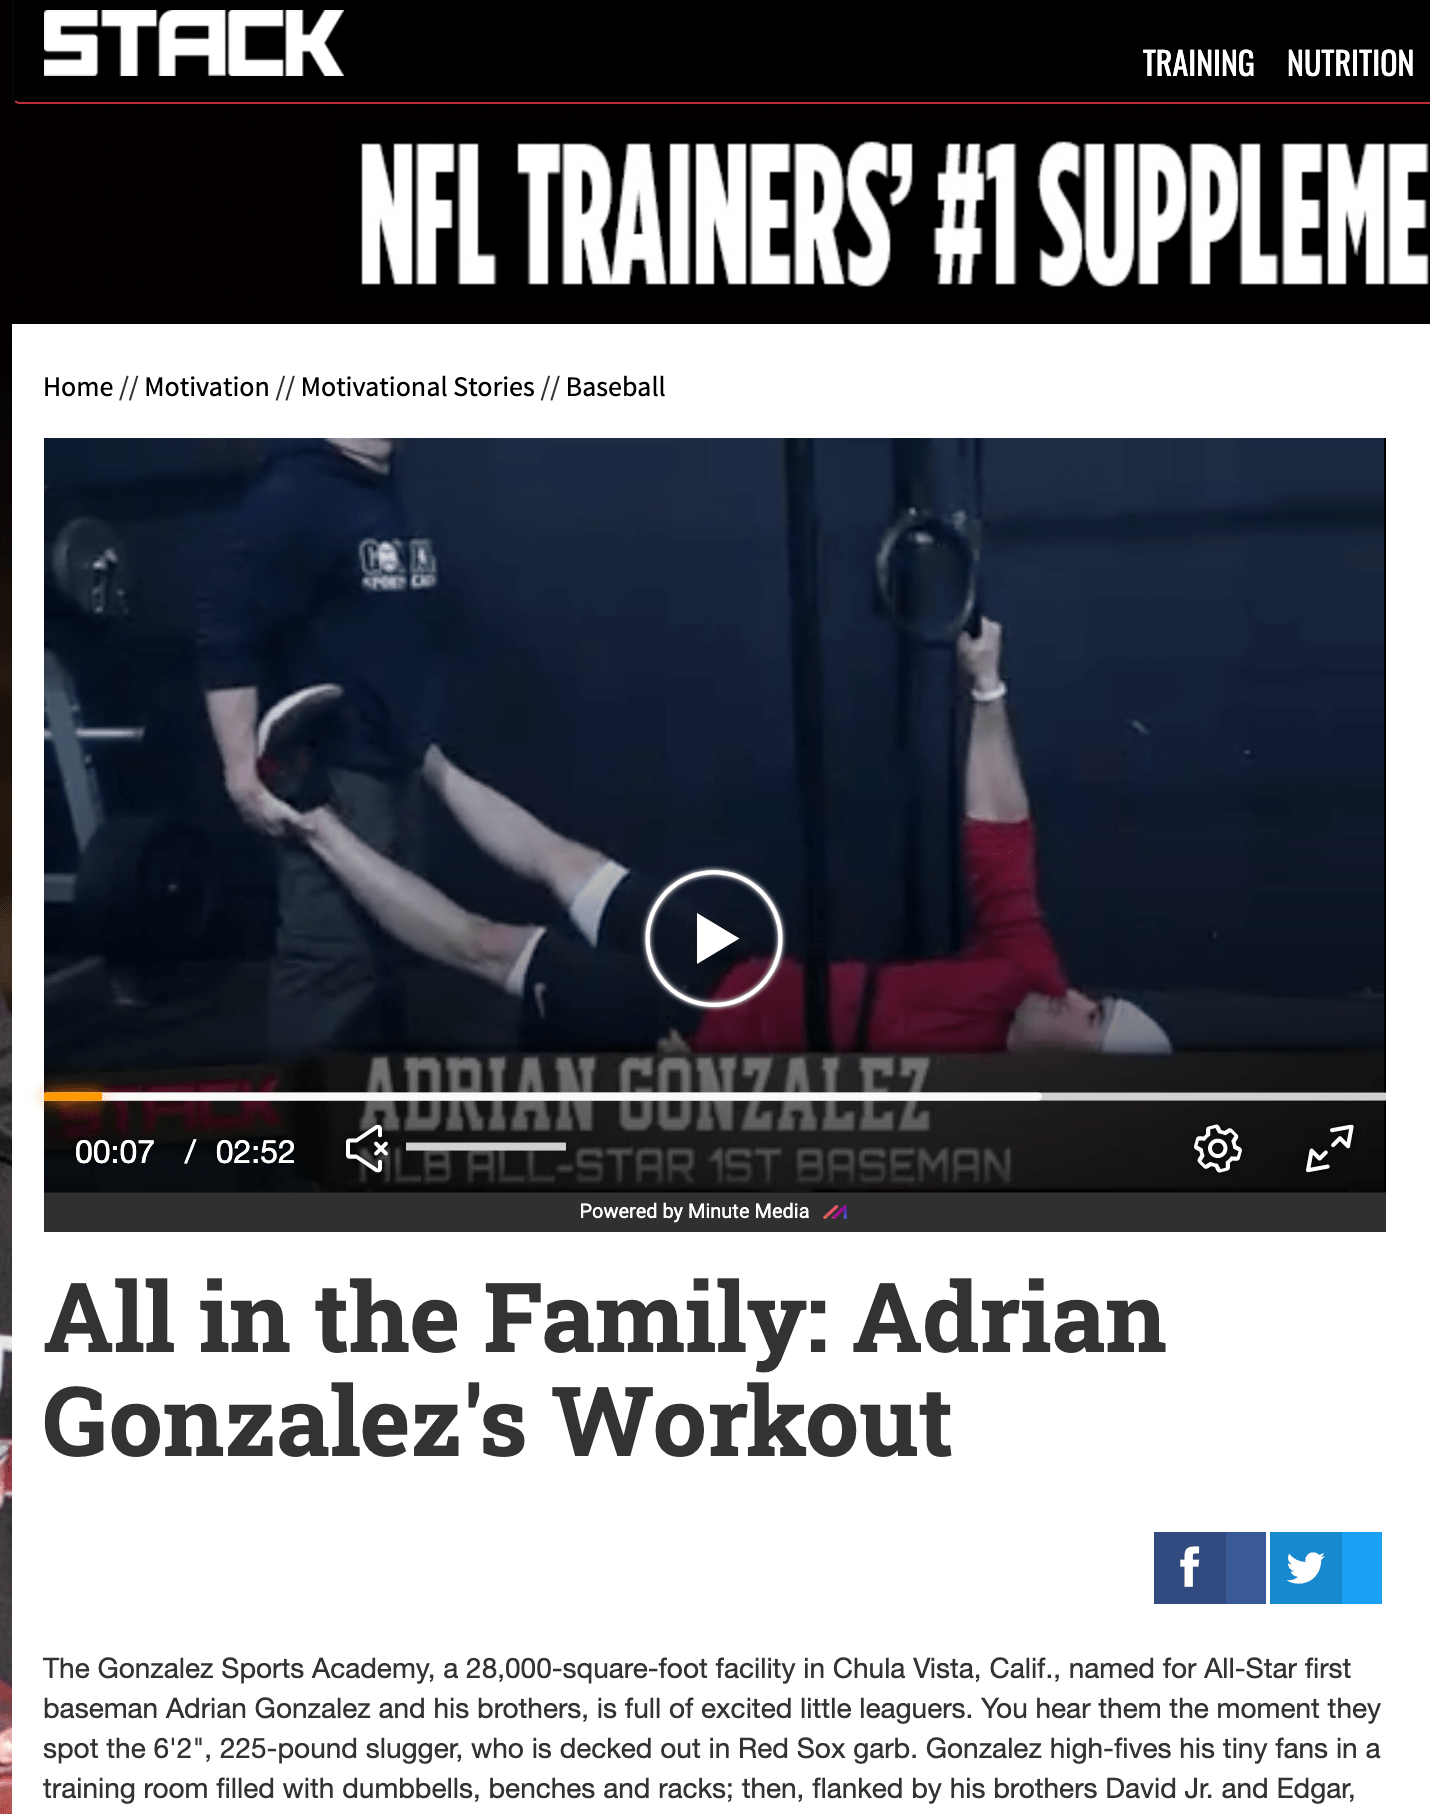 All in the Family | Adrian Gonzalez's Workout - STACK Media